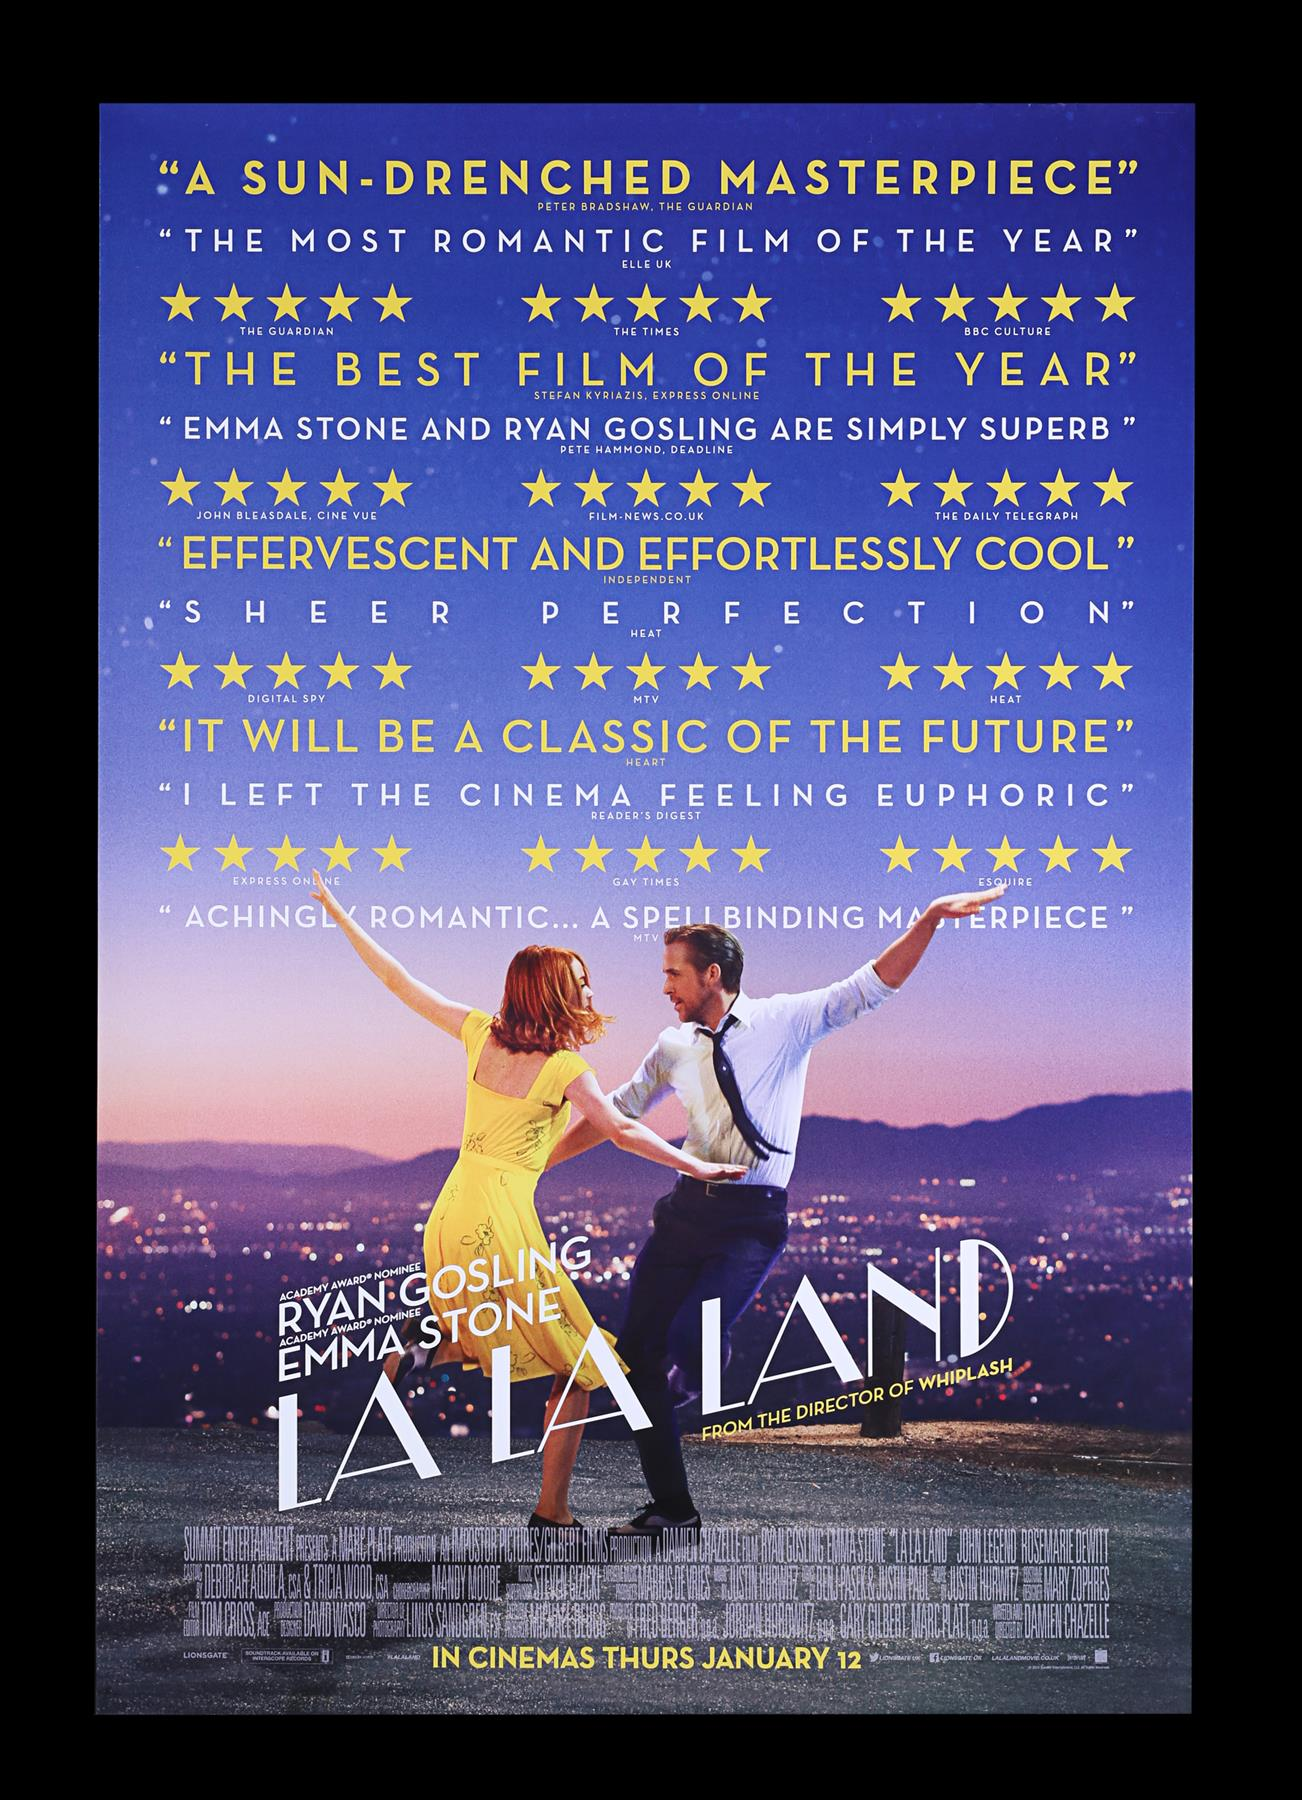 LA LA LAND (2016) - Two UK Quads and One-Sheet, 2016 - Image 6 of 7